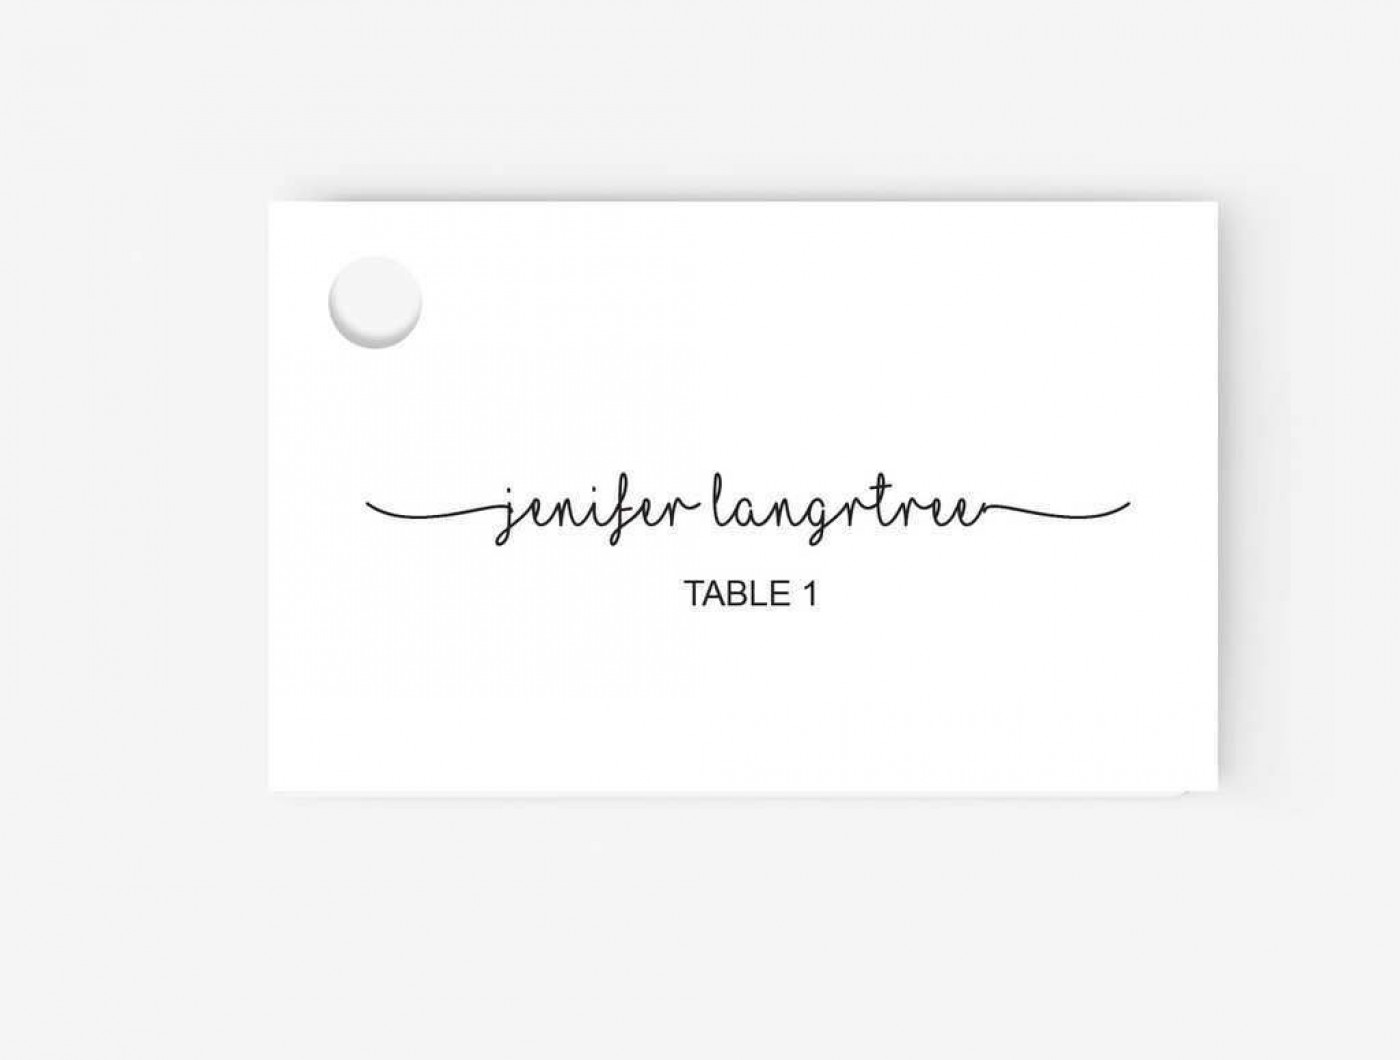 005 Shocking Place Card Template Word High Definition  Free Name Folding Microsoft Table1400